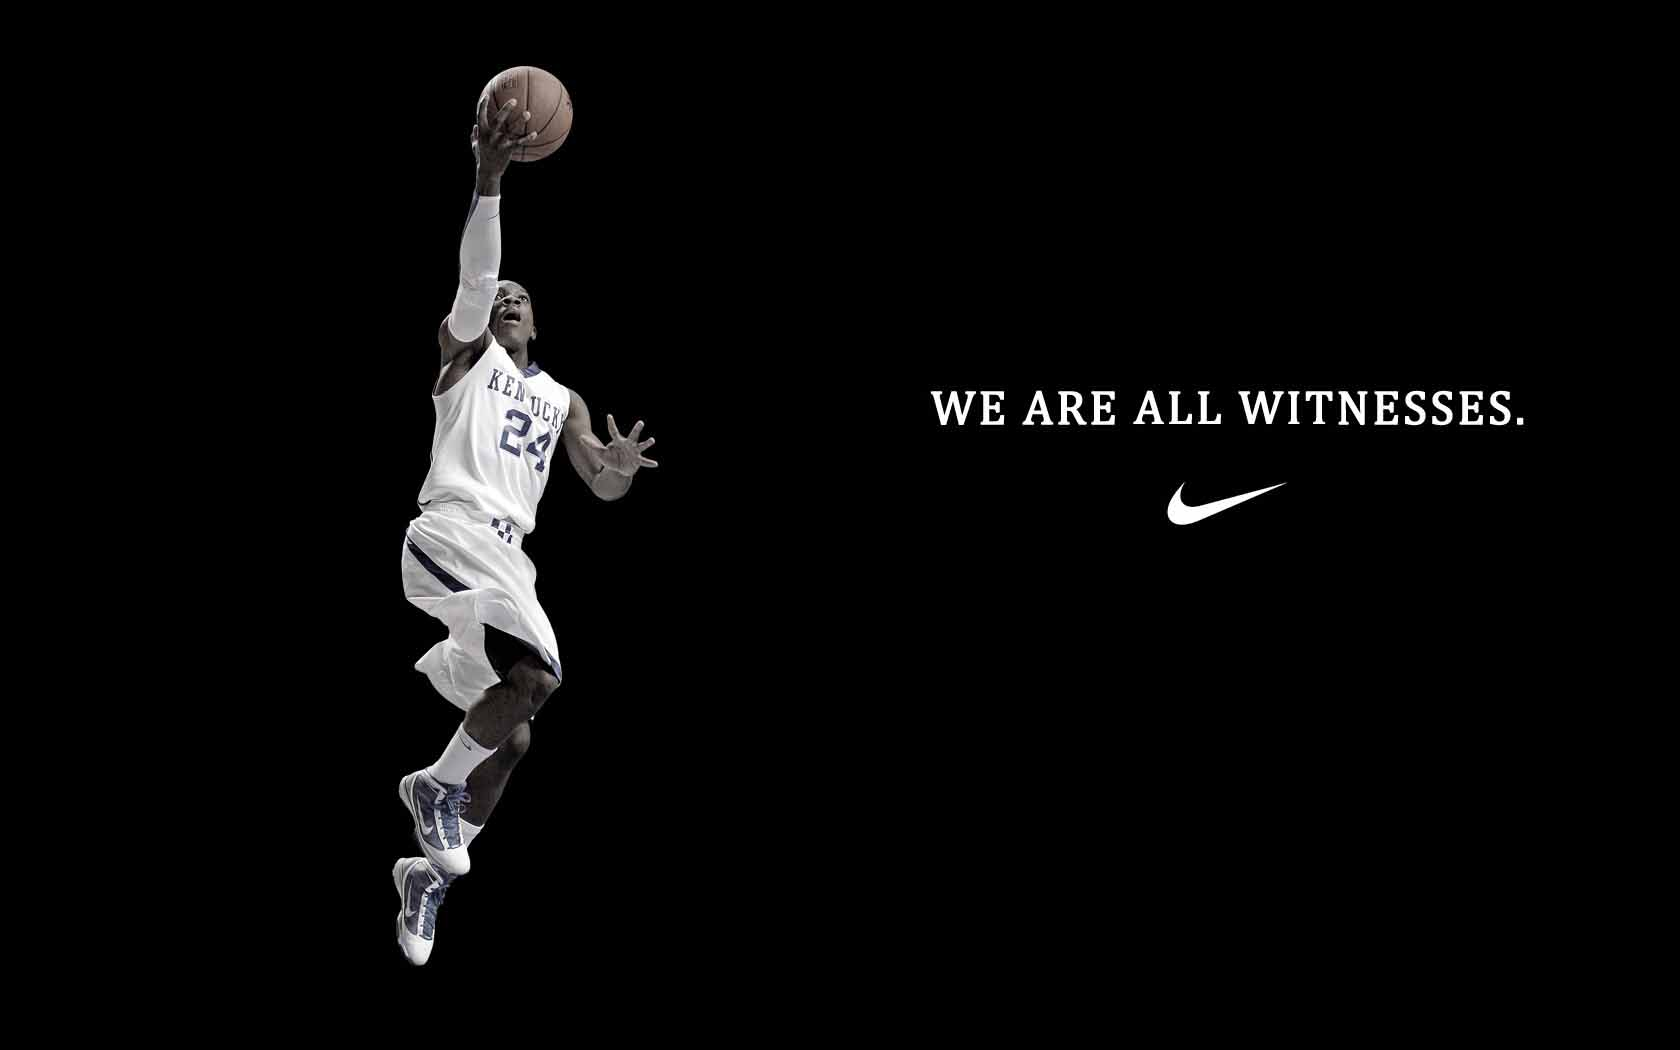 Nike Wallpaper Nba: Nike Wallpapers Basketball